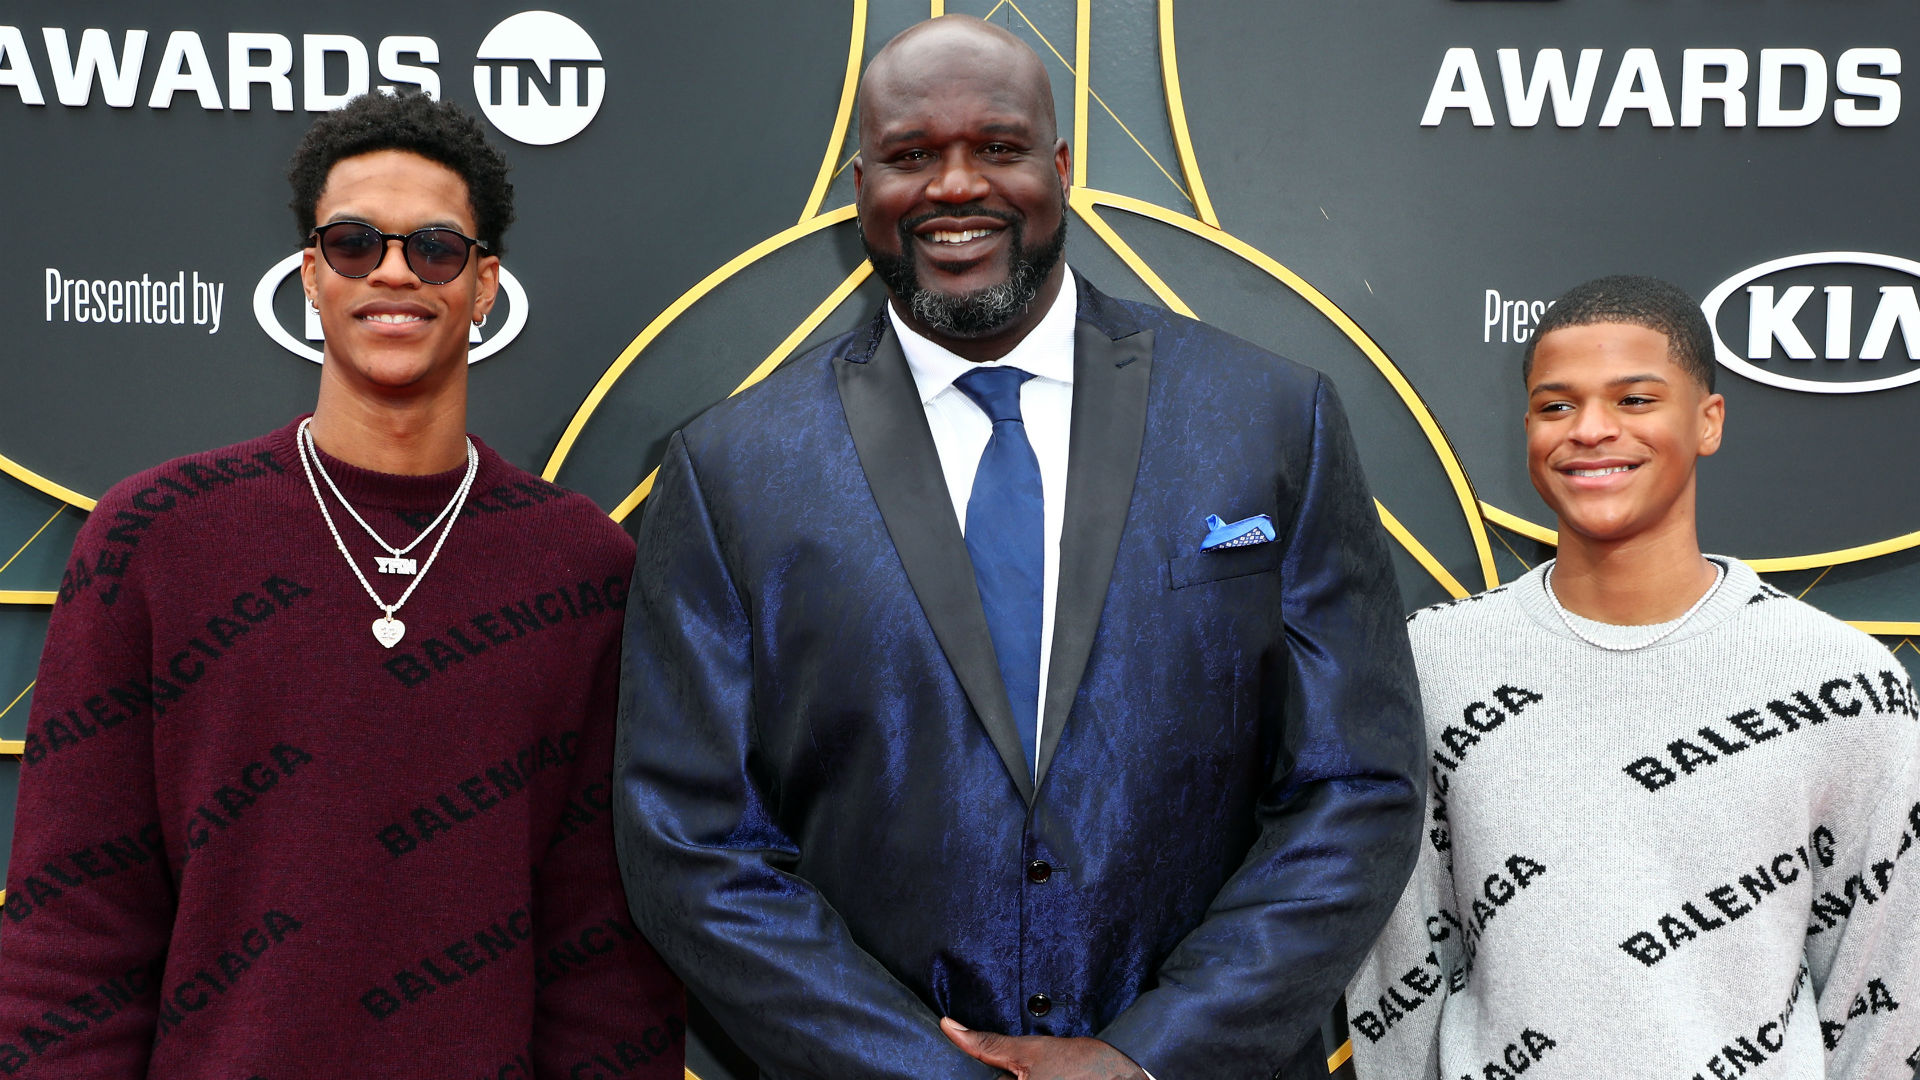 NBA Awards 2019 Live updates highlights video and more from the 1920x1080